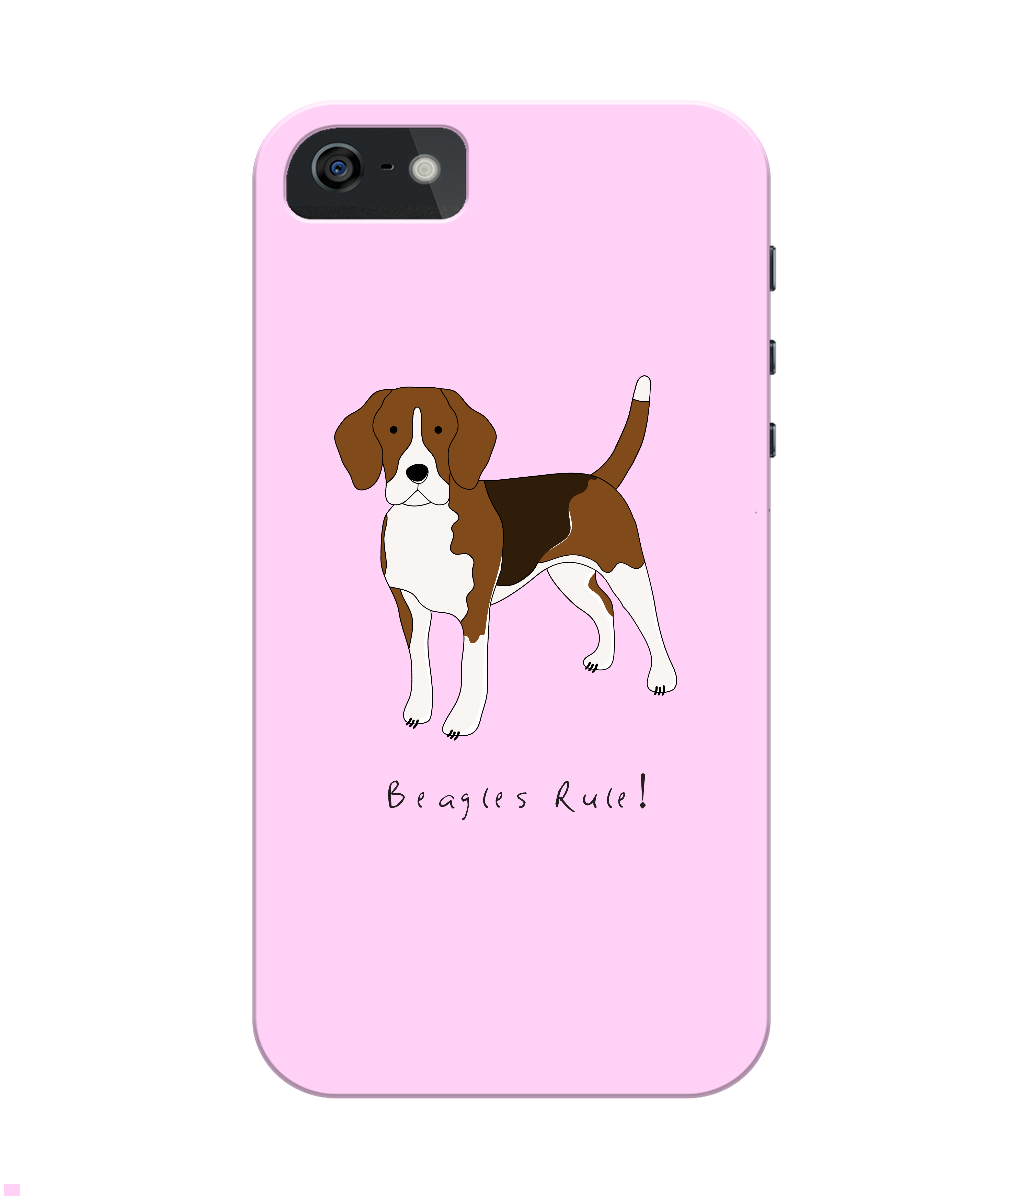 iPhone 4/4s Full Wrap Phone Case - Beagles Rule!